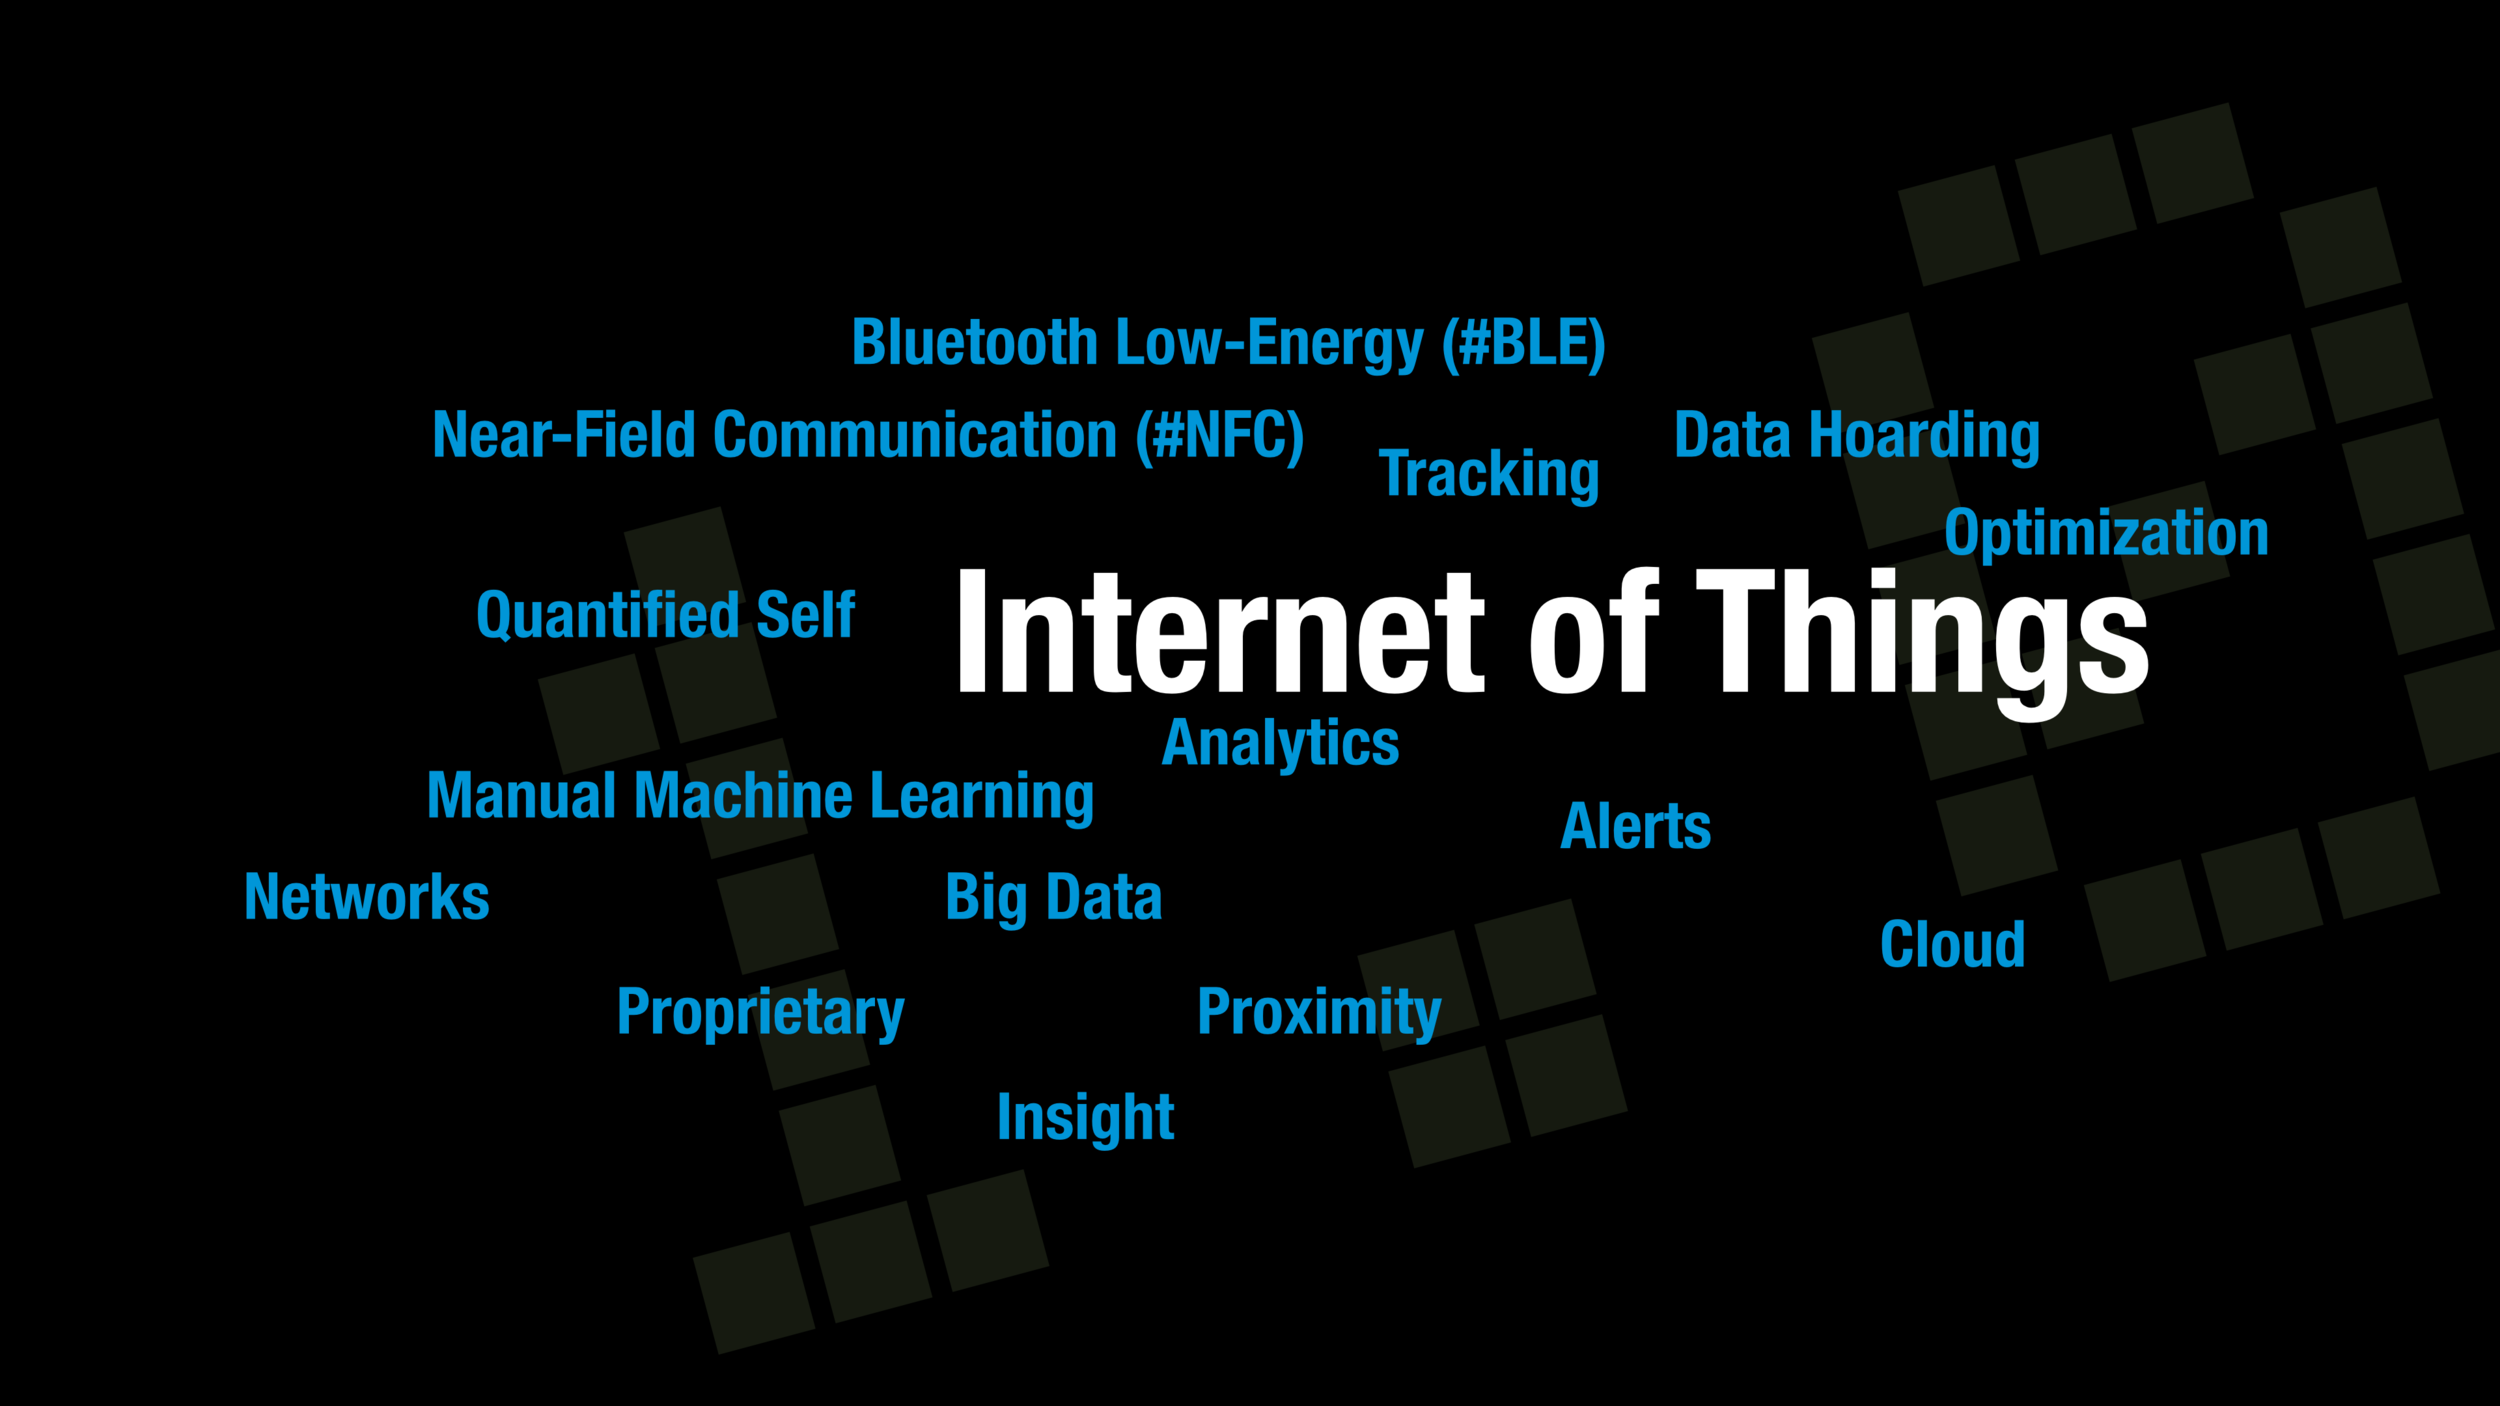 The Internet of Things is affected by many of the key technology platform terms of today: the cloud, big data, and especially proximity-based tools like near-field communication (NFC) and Bluetooth™ Low Energy (BLE).